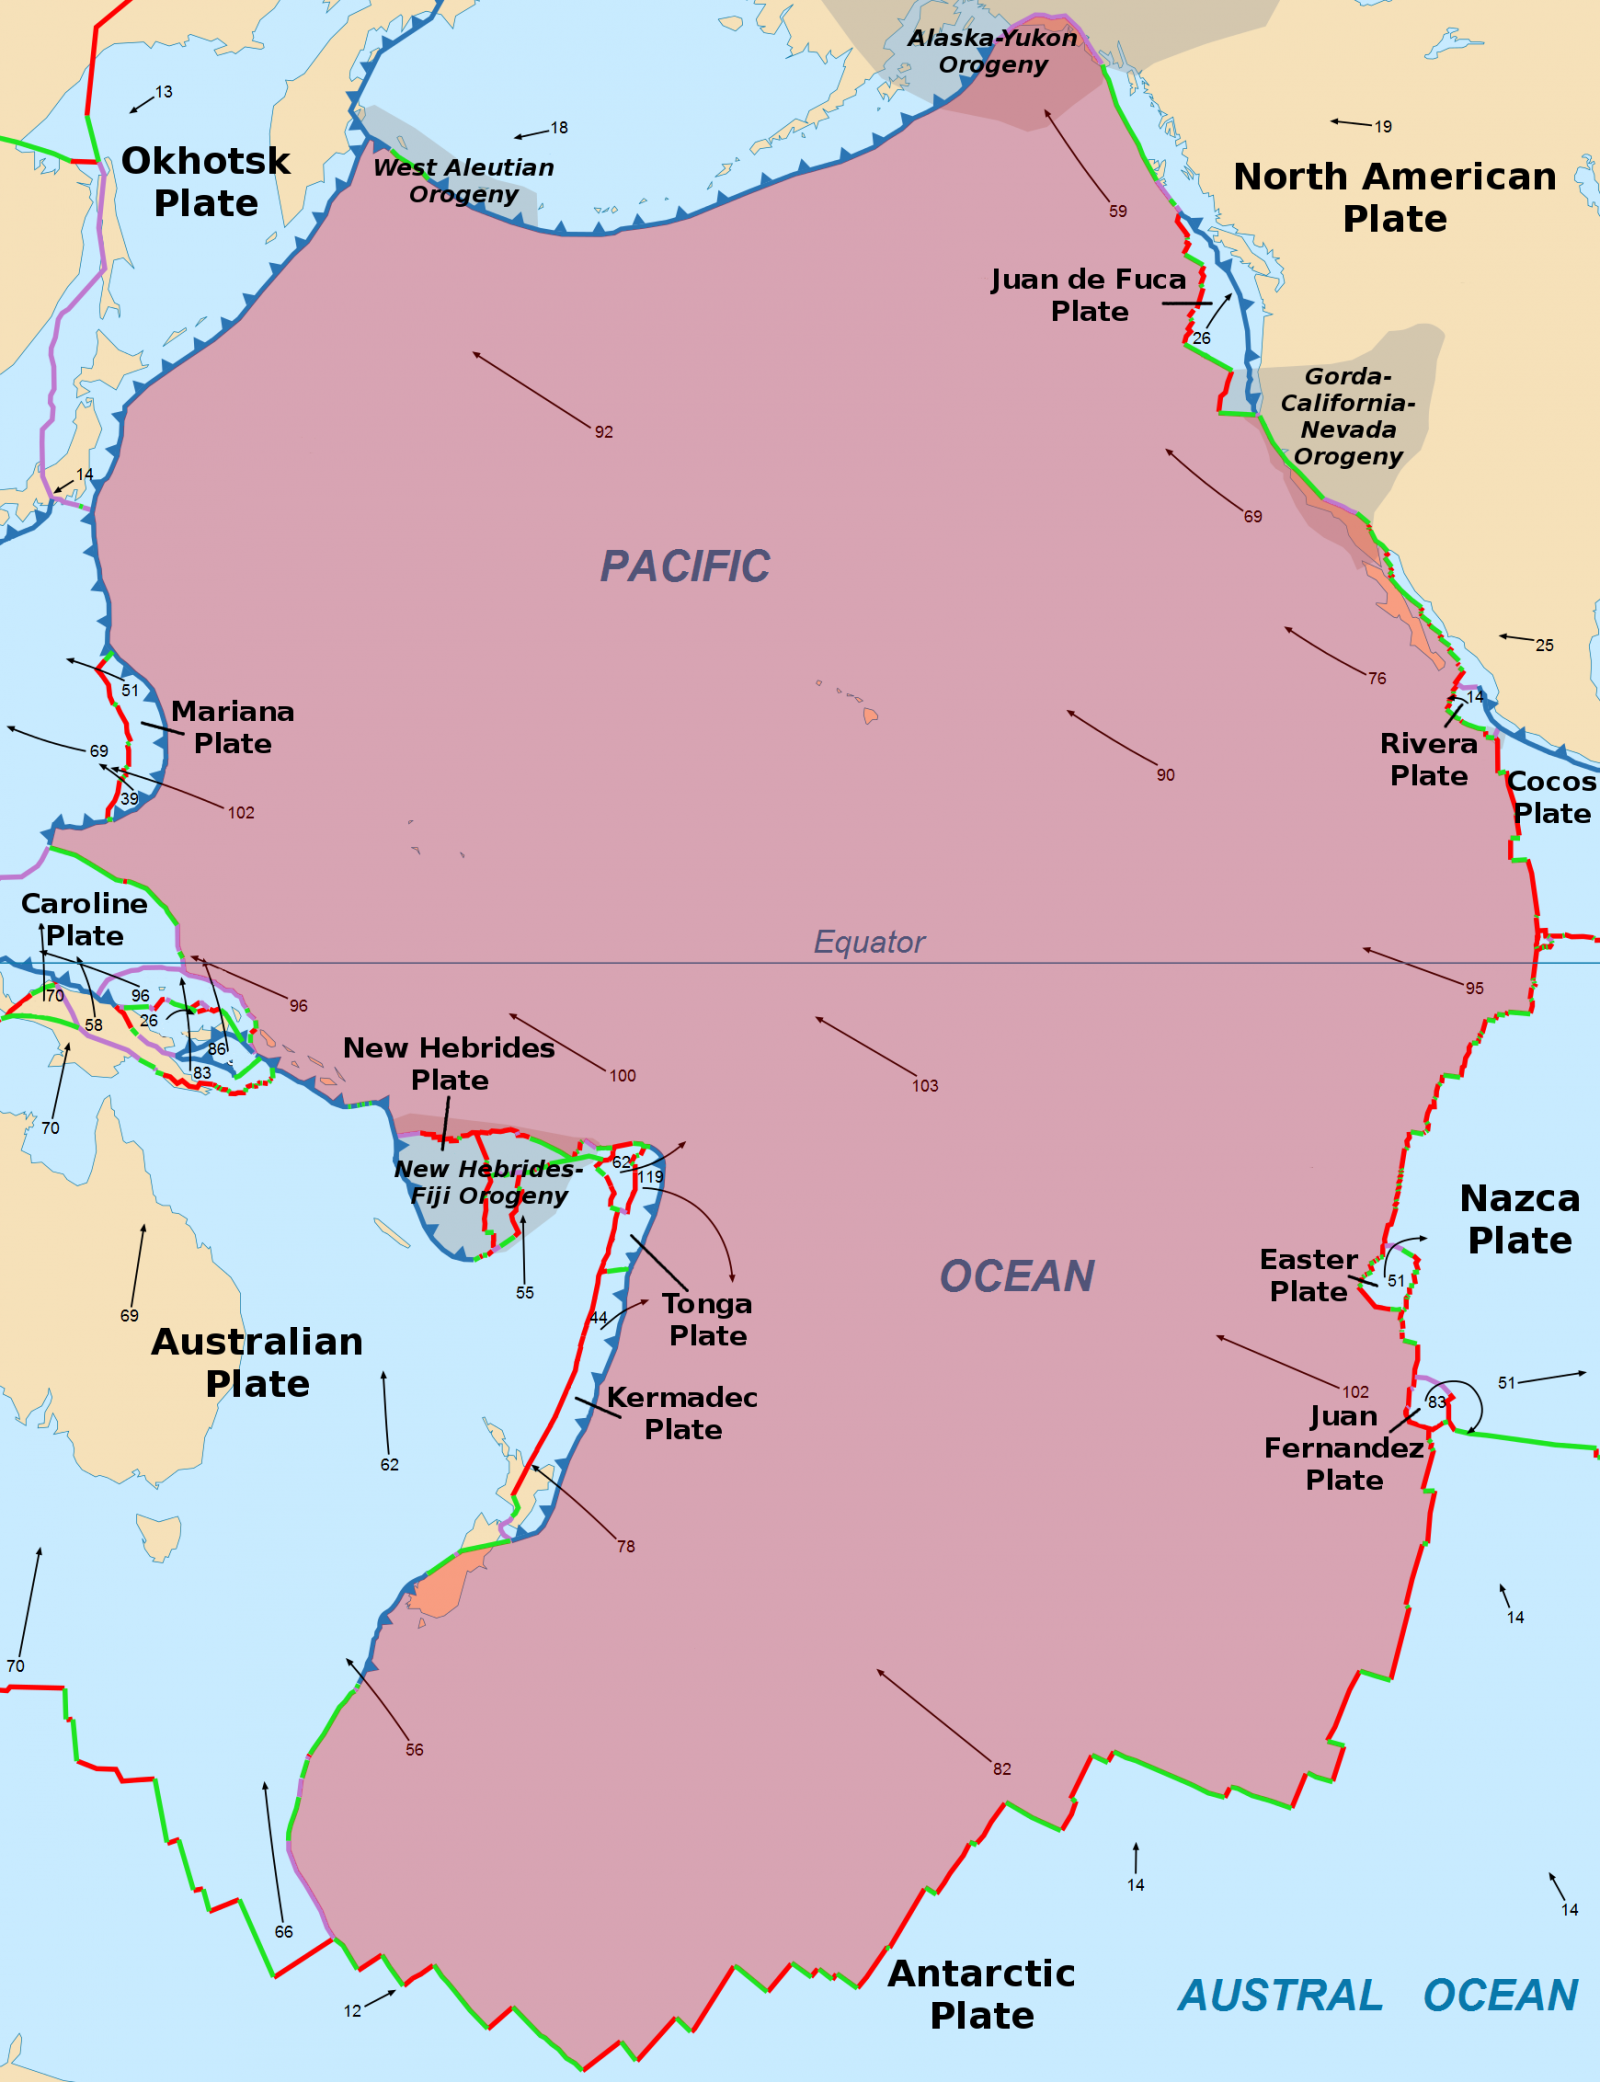 Pacific Plate birth